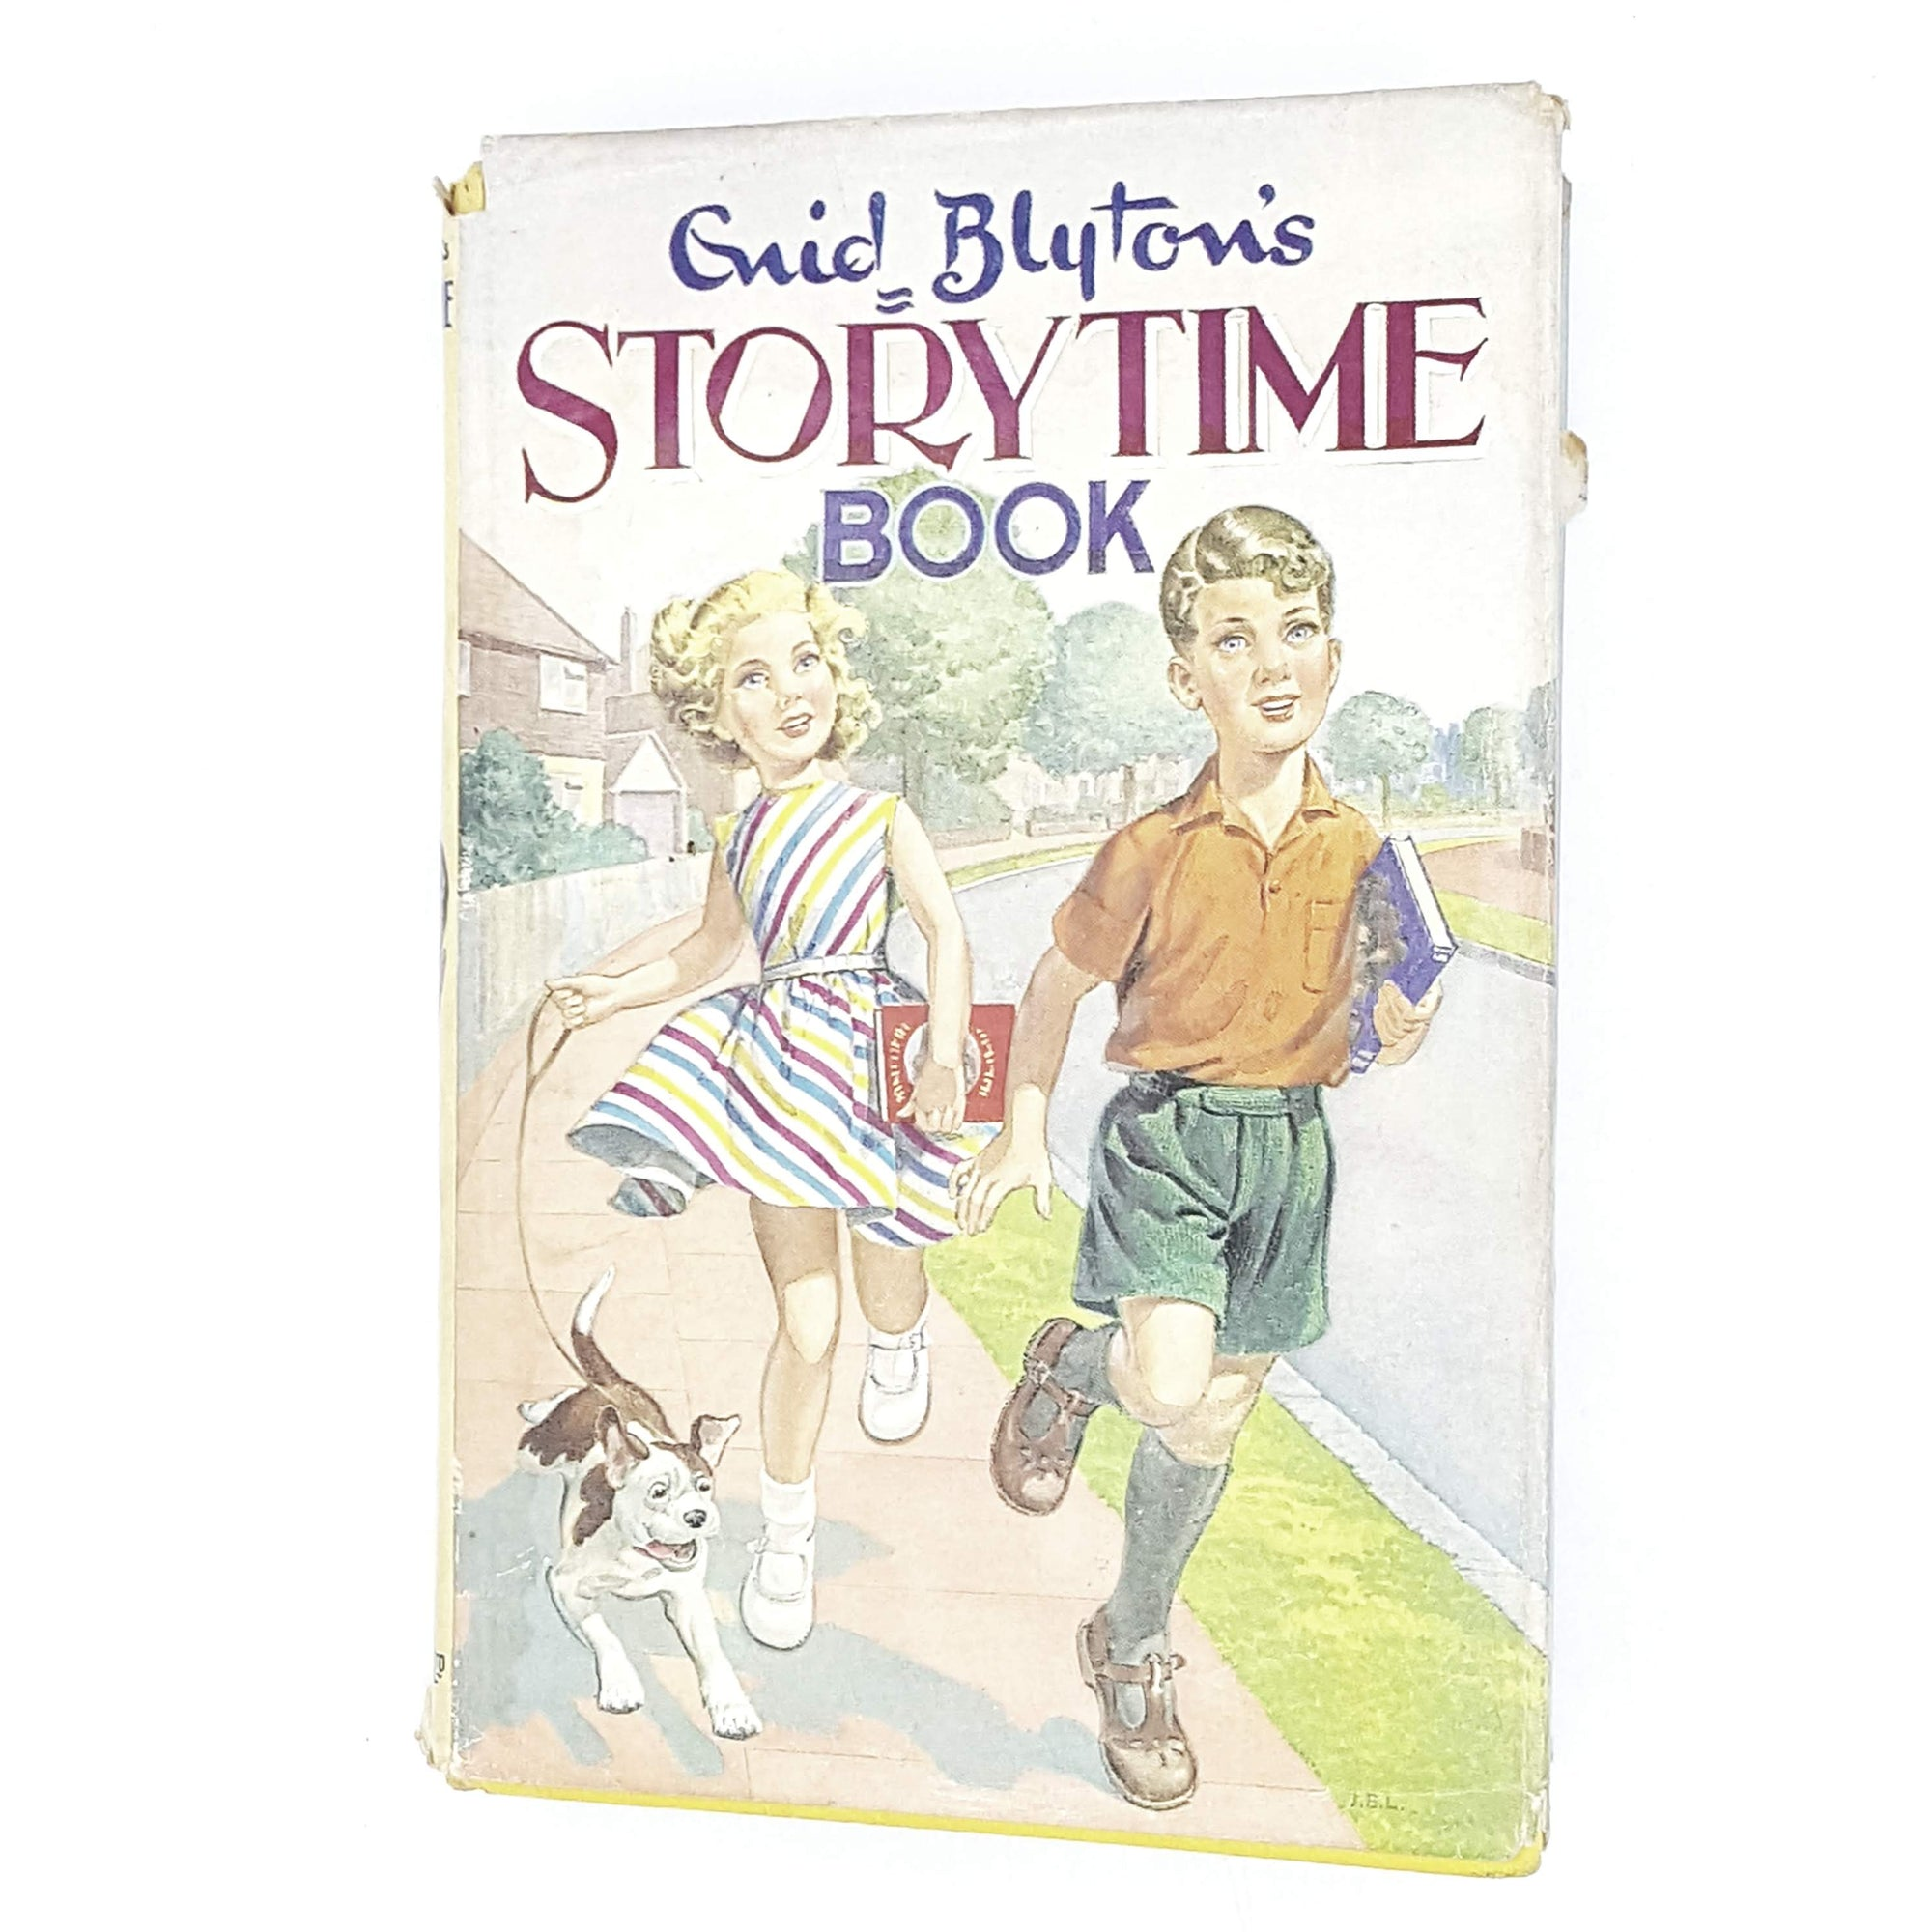 storytime-enid-blyton-kids-illustrated-vintage-book-country-library-book